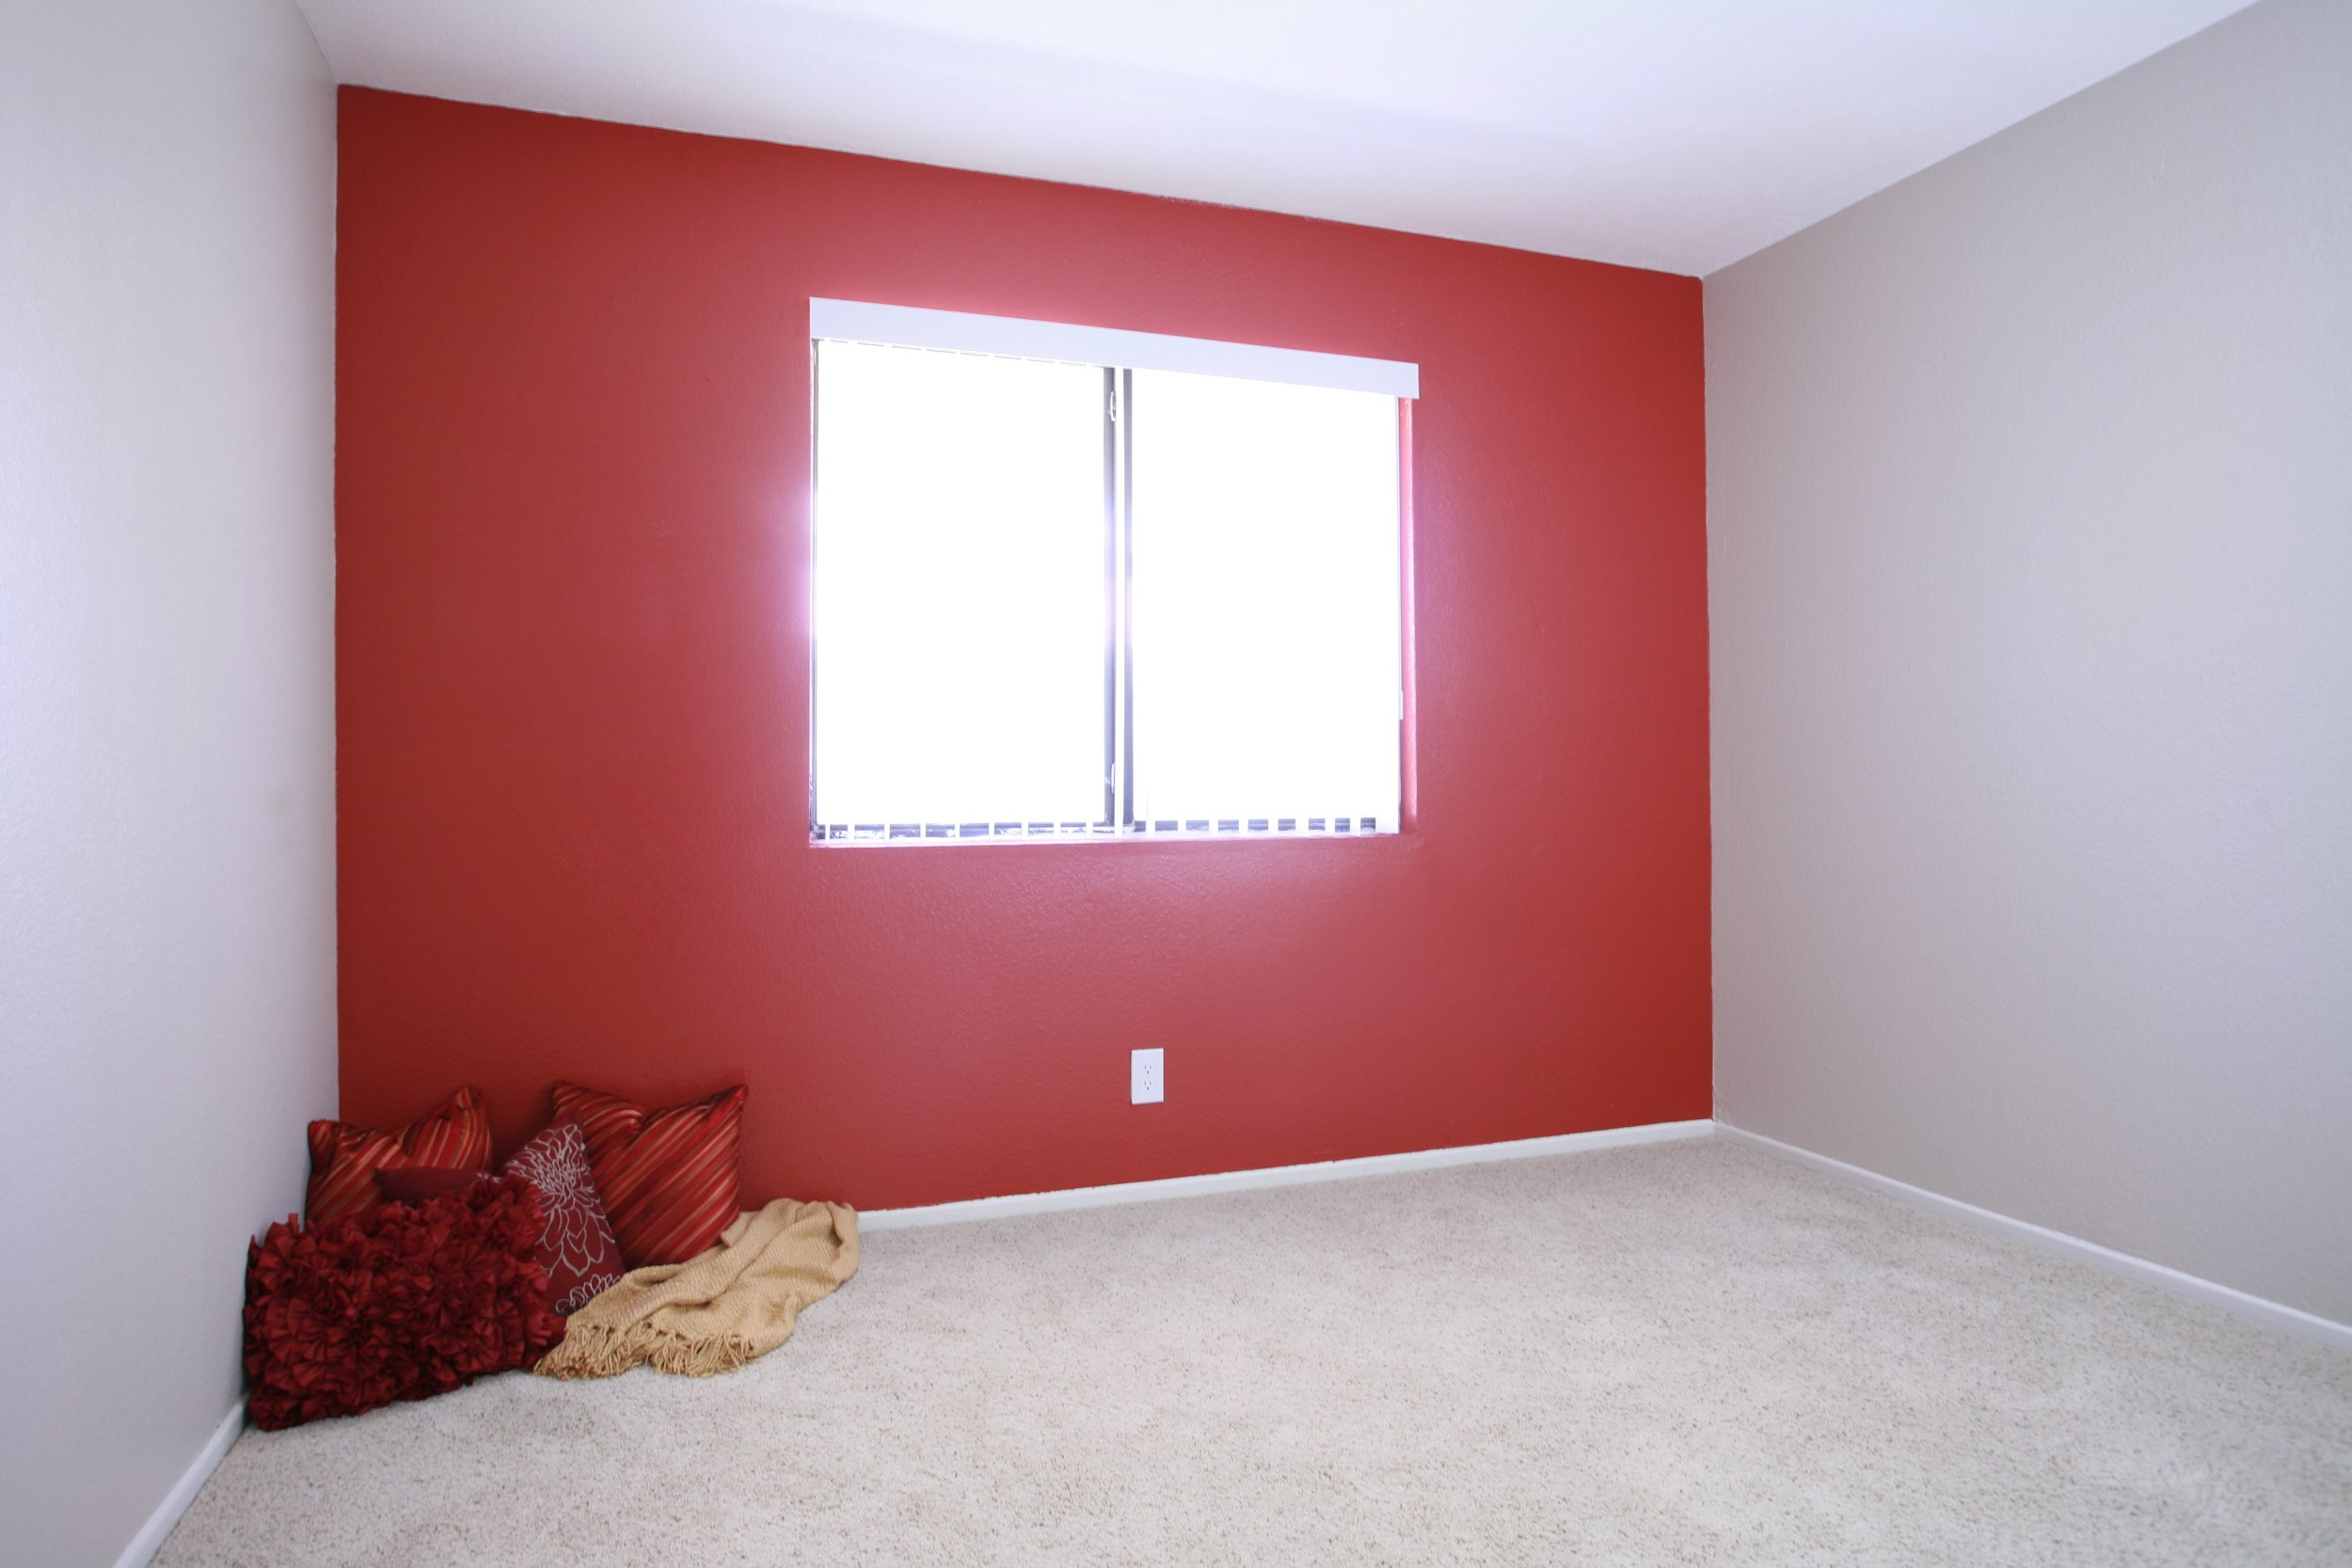 Red accent wall in bedroom at Serrano